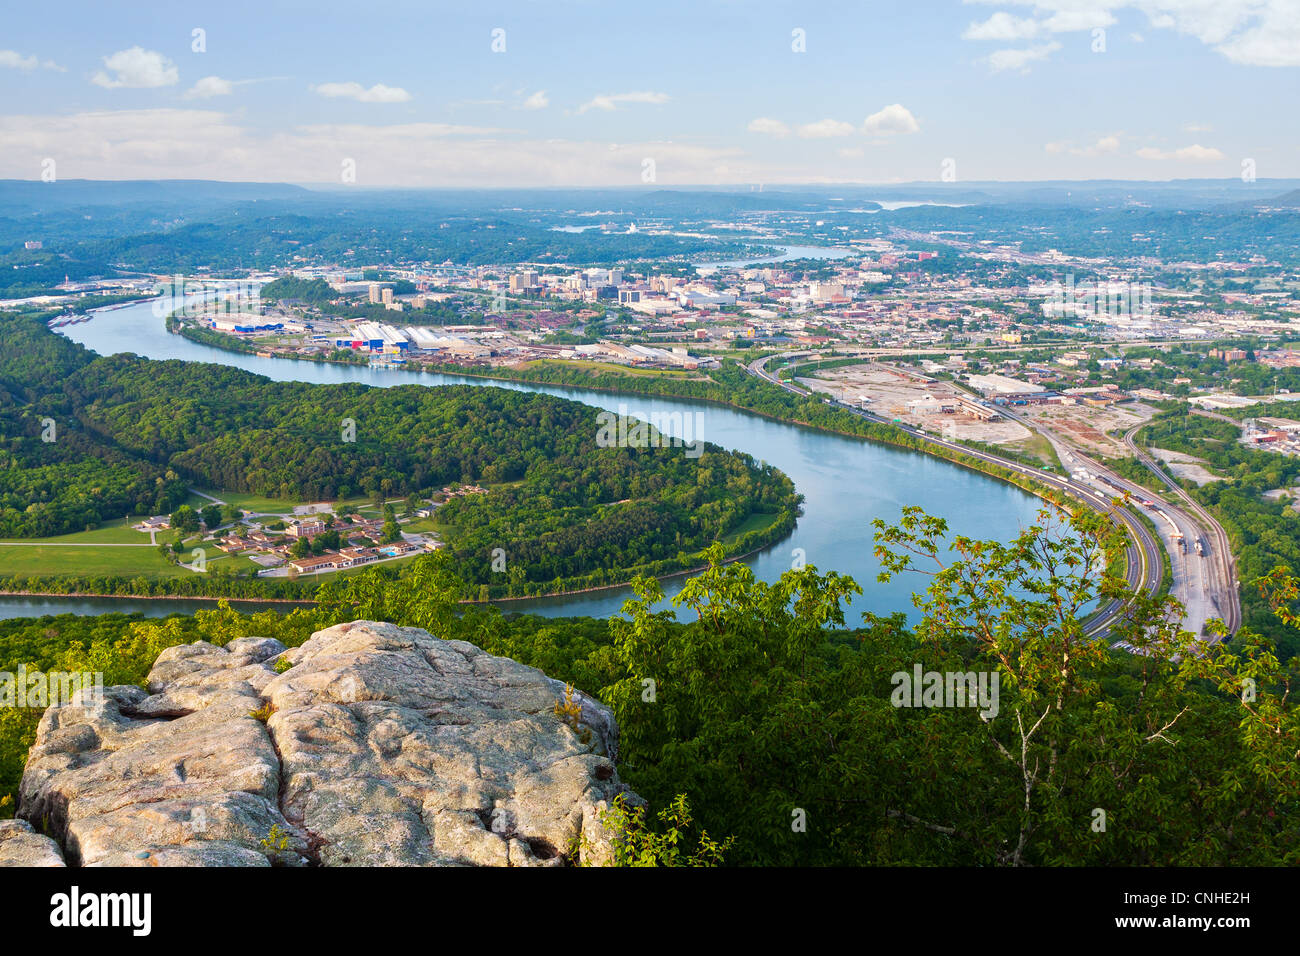 View of Chattanooga, Tennessee from Lookout Mountain - Stock Image